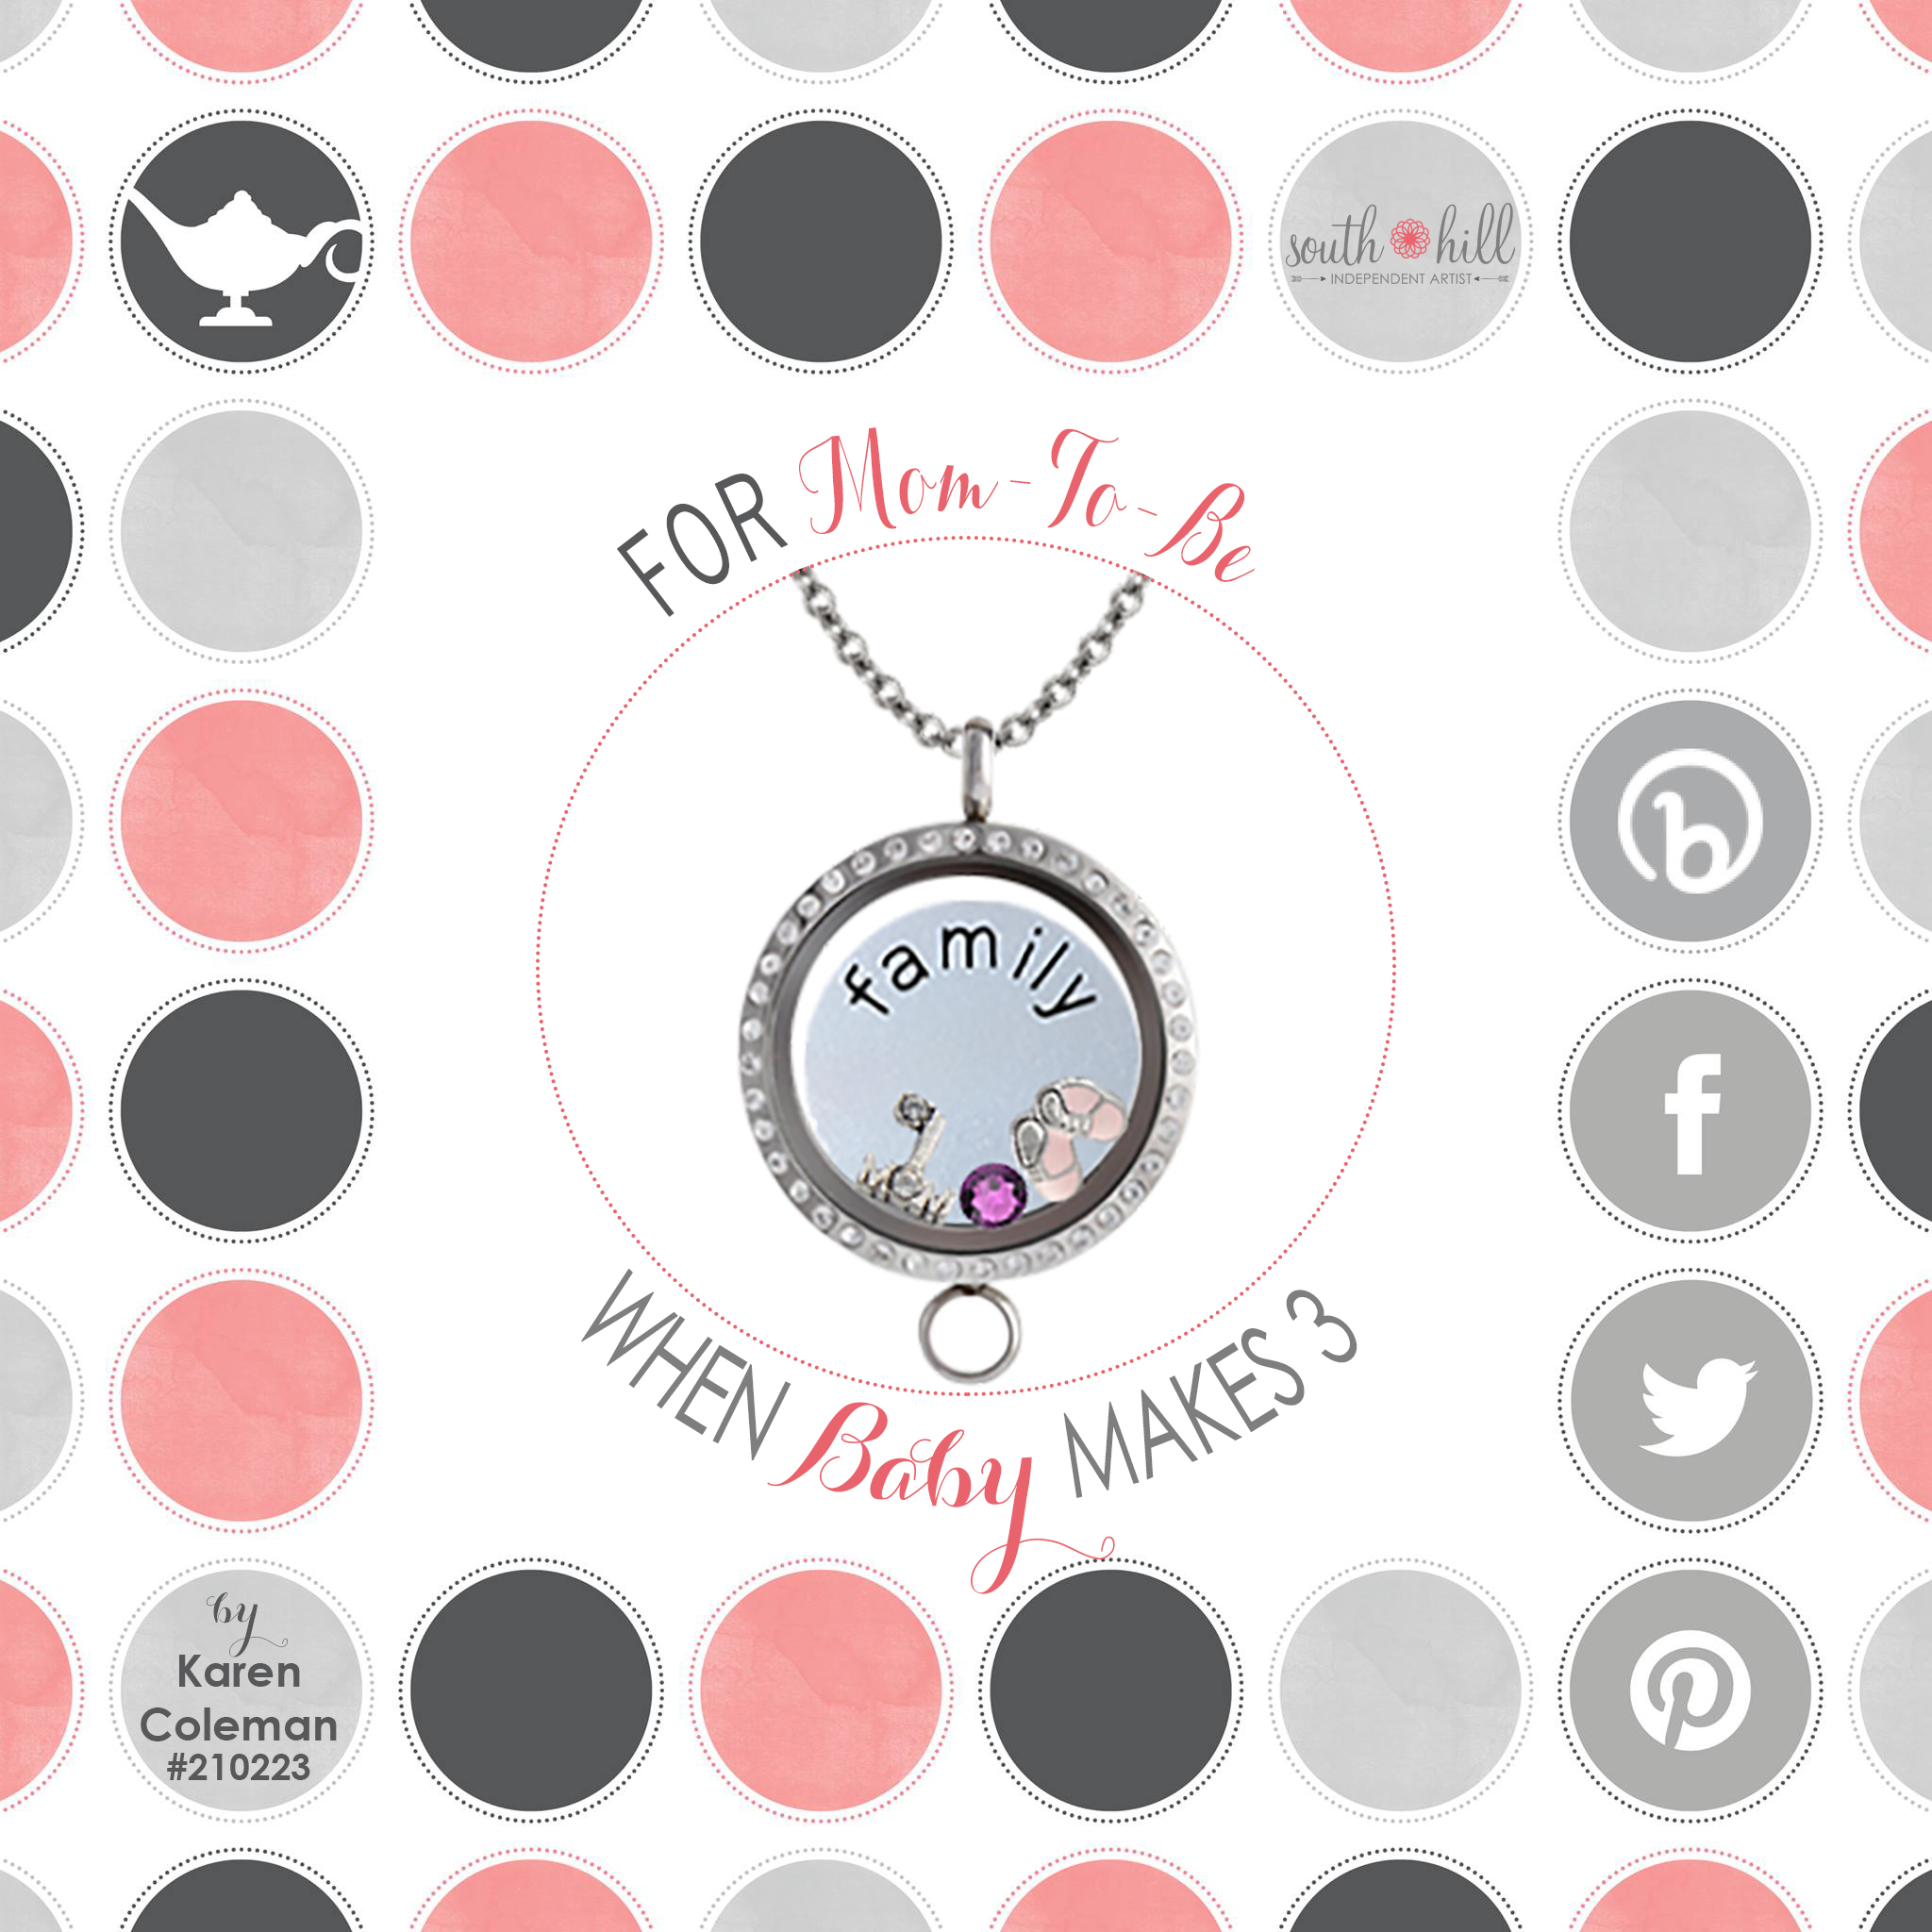 Clipart family 3 girls 1 boy clip black and white stock For Mom-to-be When Baby Makes 3 | Kaz Designs Lockets ... clip black and white stock